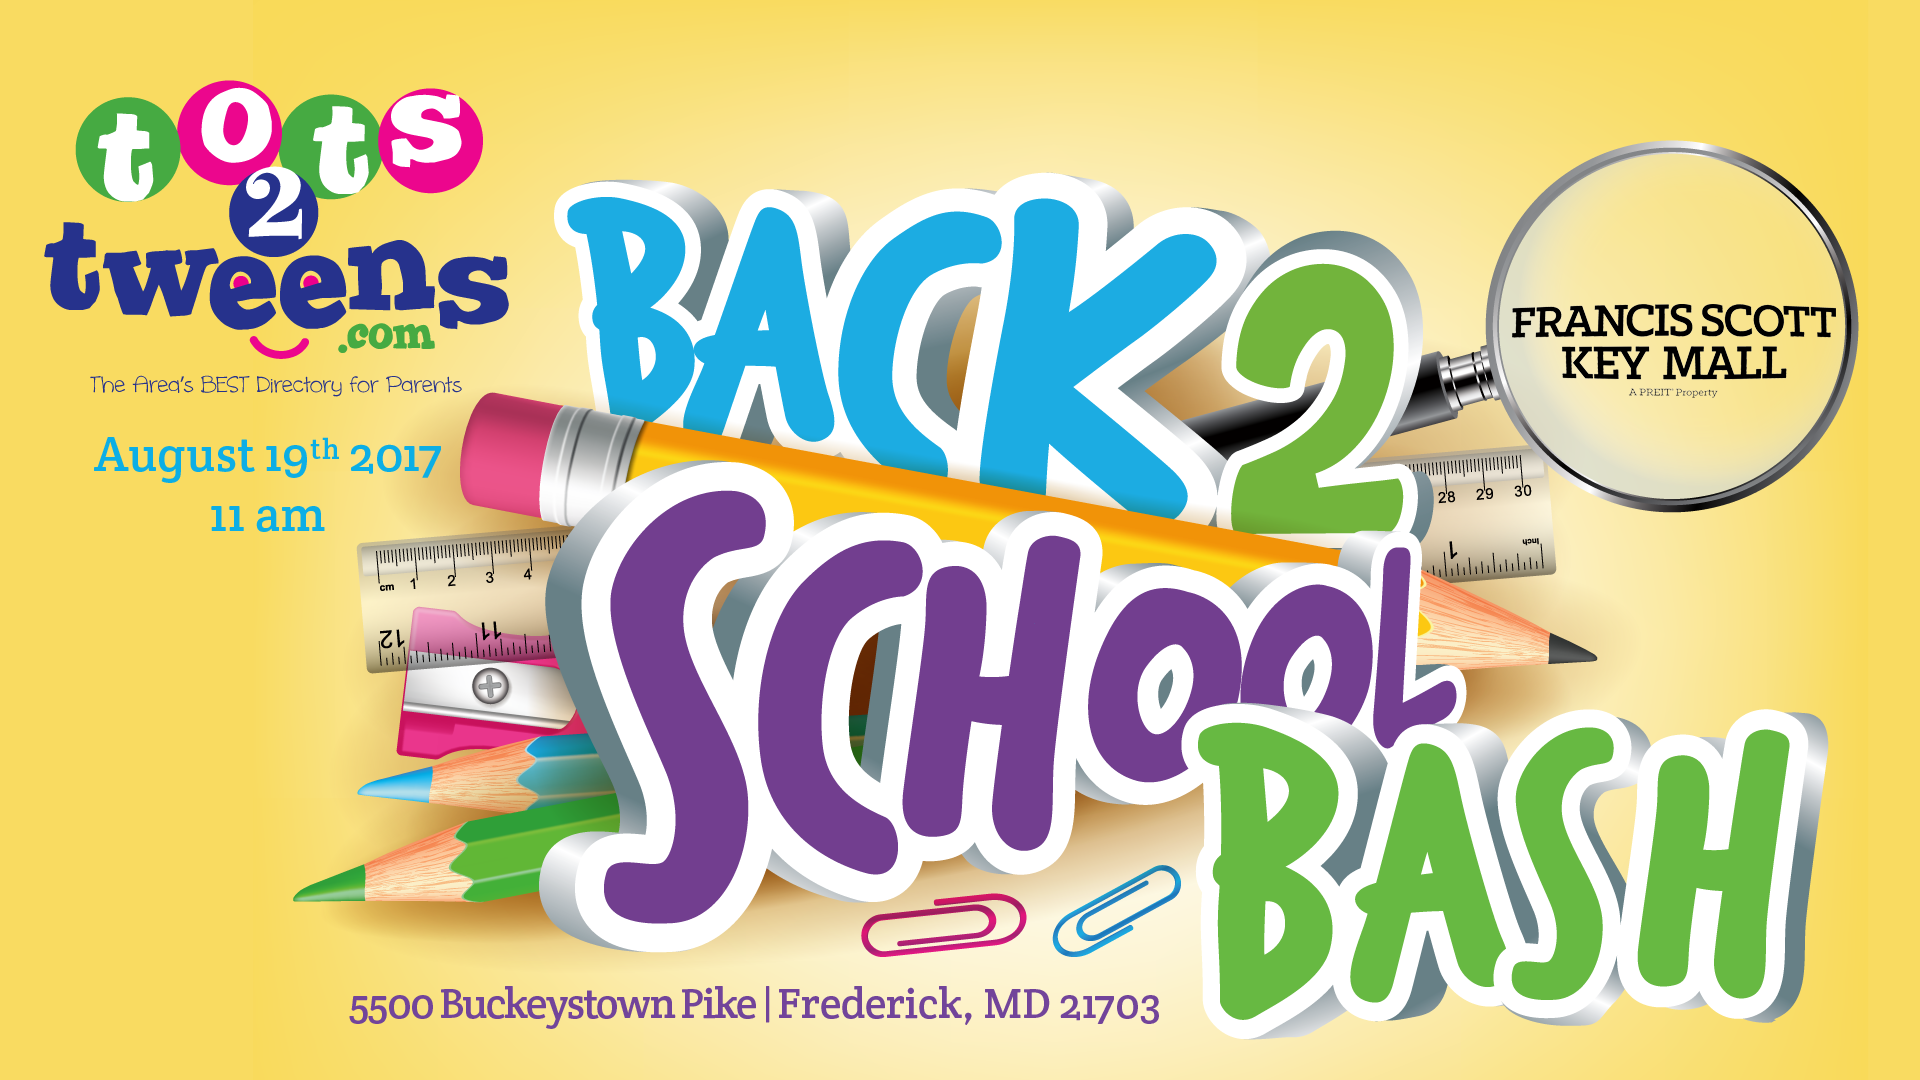 tots 2 tweens back to school event